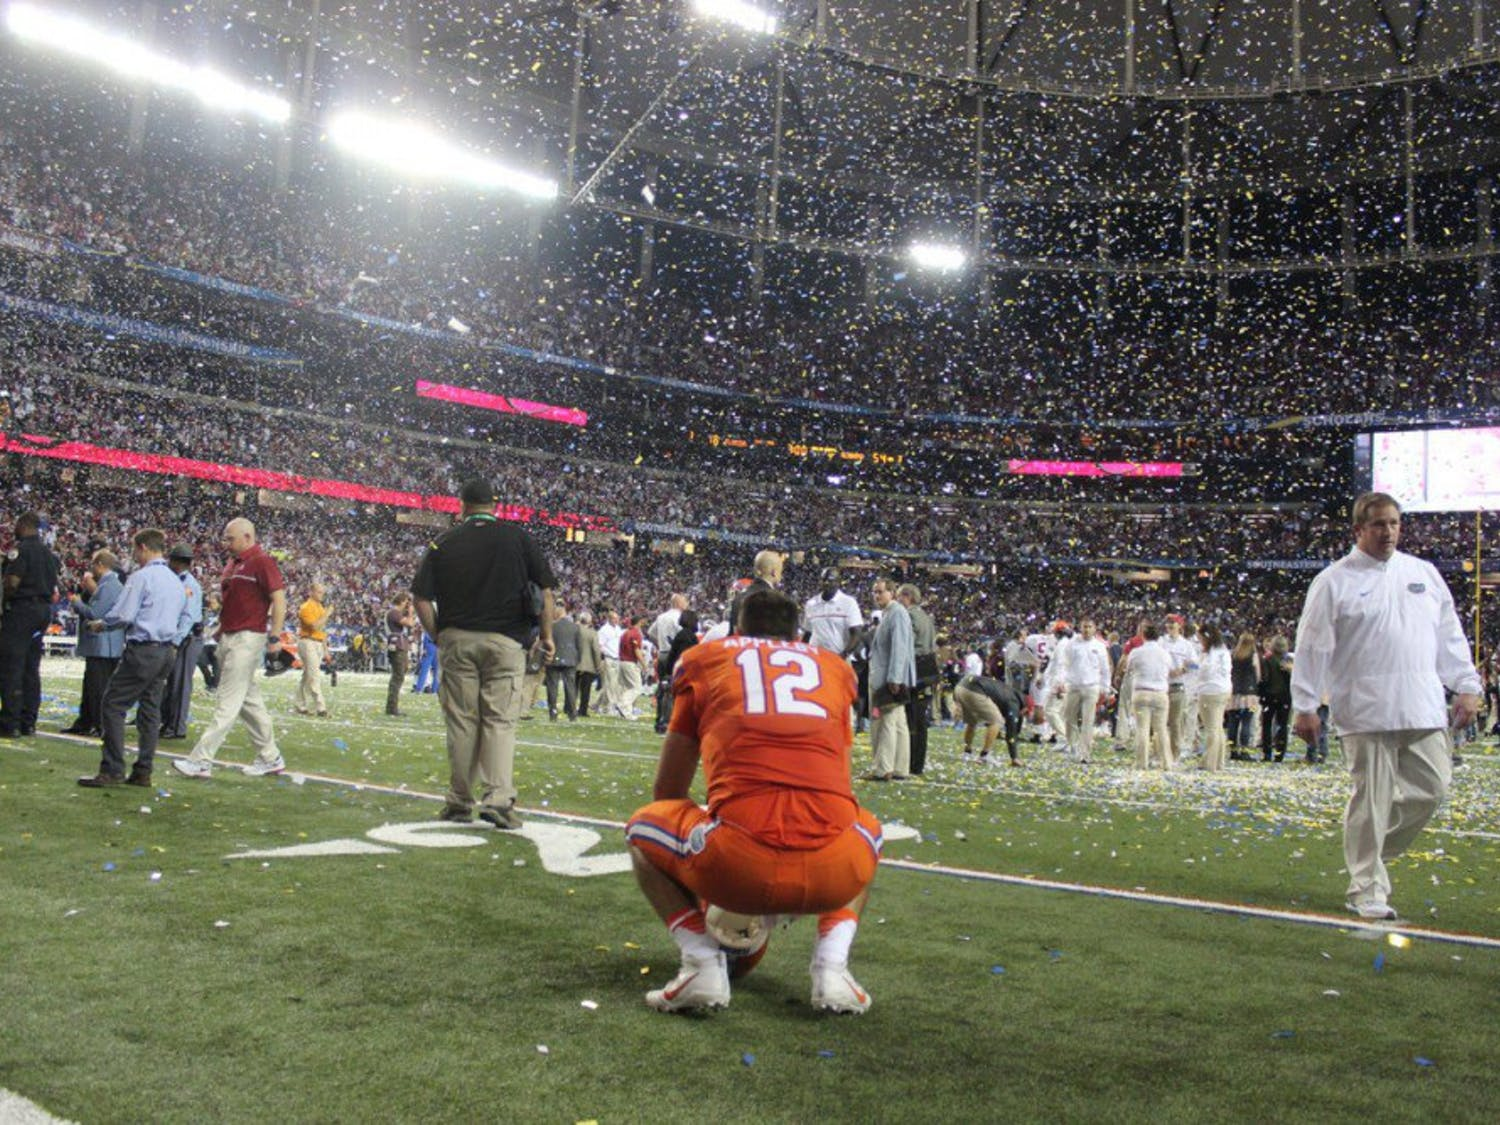 Austin Appleby kneels on the field after Florida's 54-16 loss to Alabama on Dec. 3, 2016, in the SEC Championship Game.